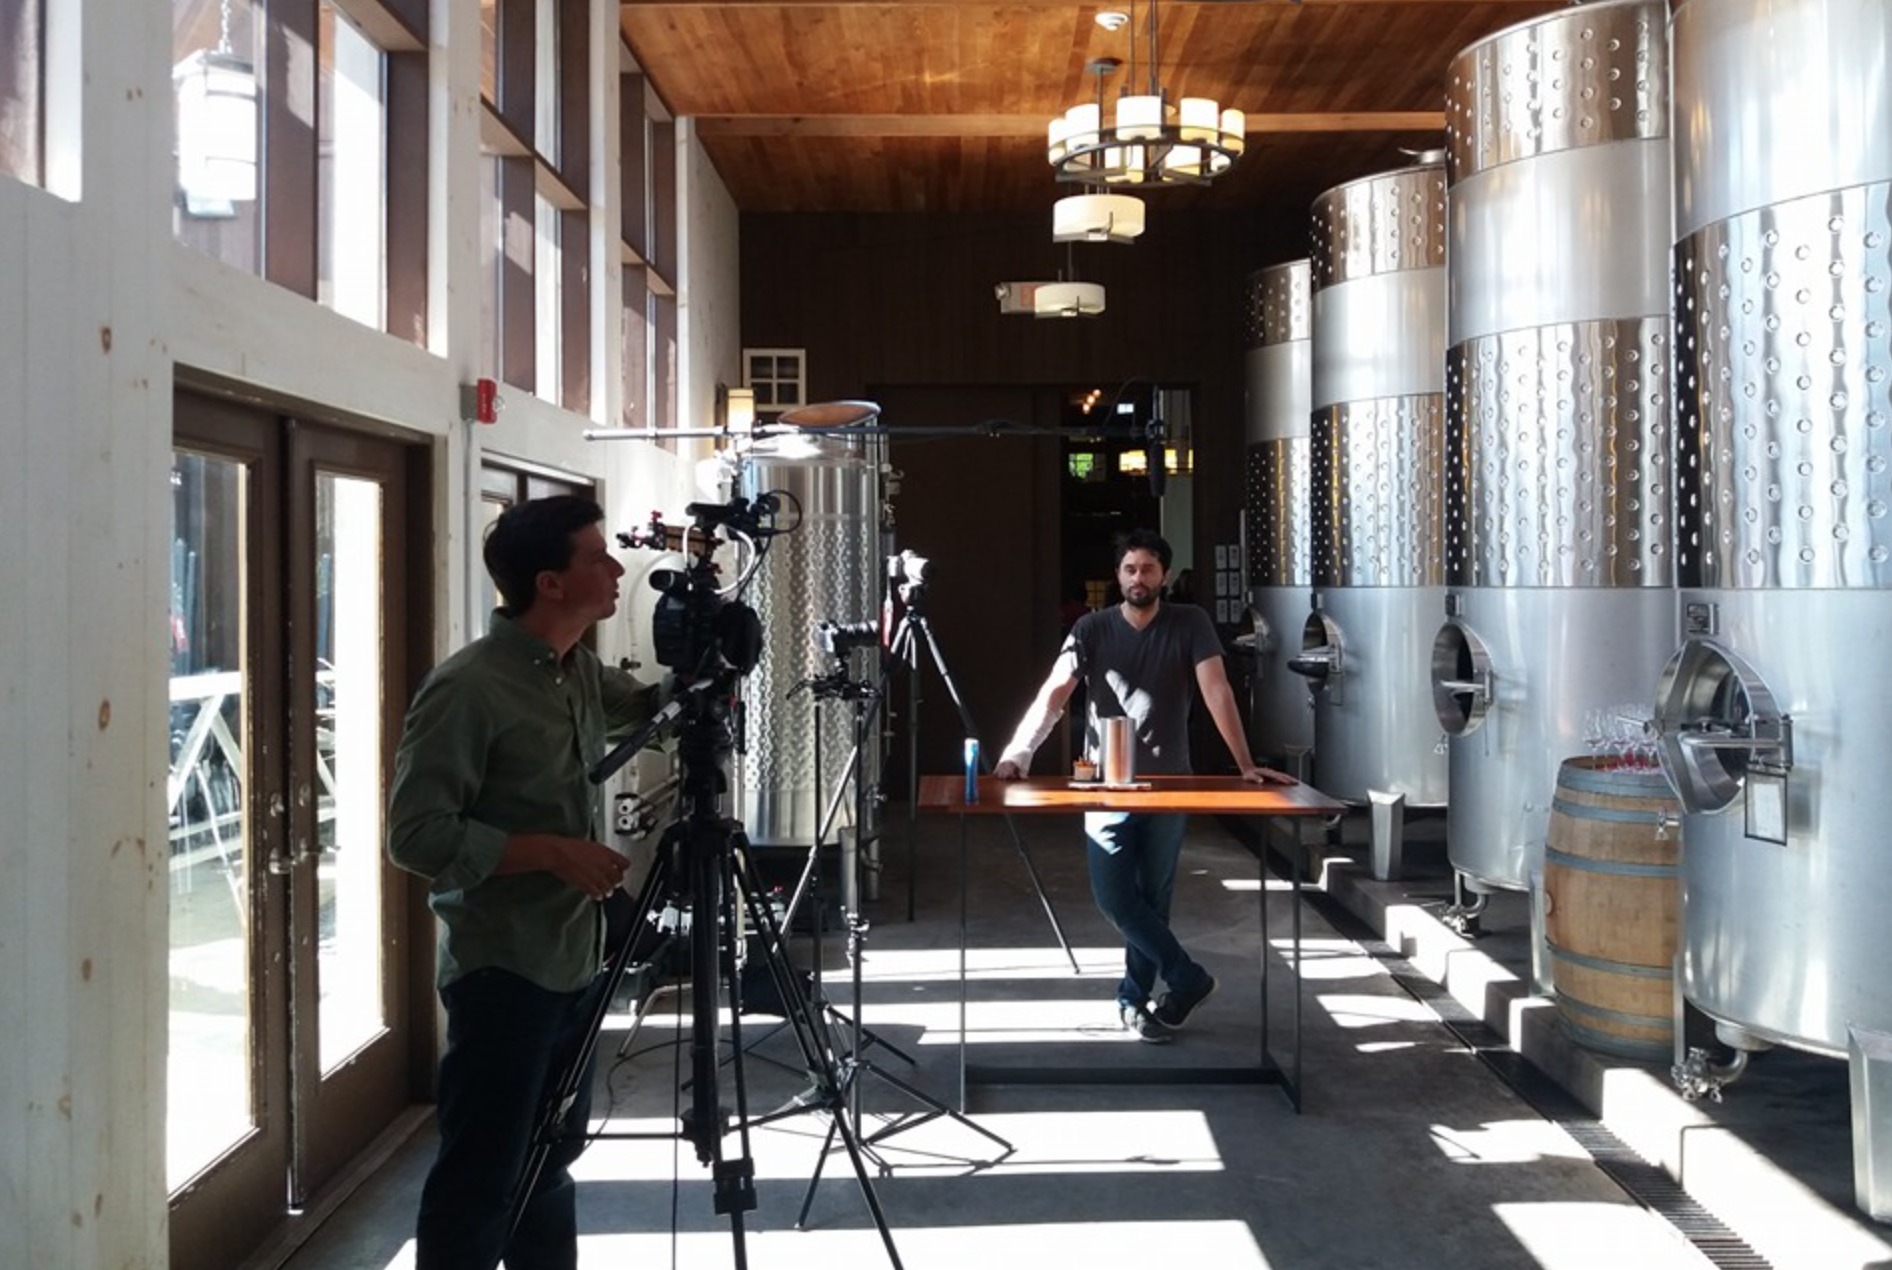 On location at Hermann J. Wiemer Vineyards.